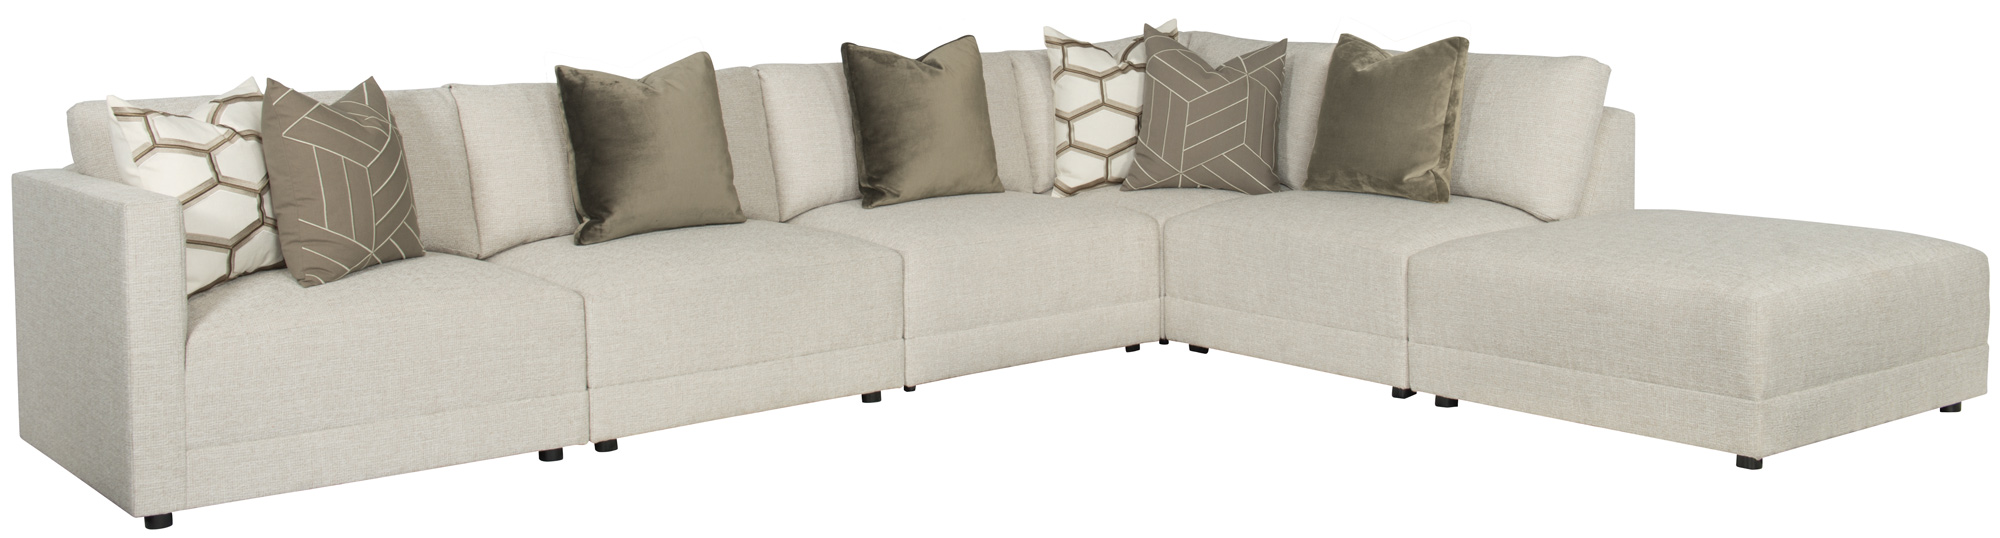 sectional bernhardt left arm chaise lounge chair left and right arm chairs